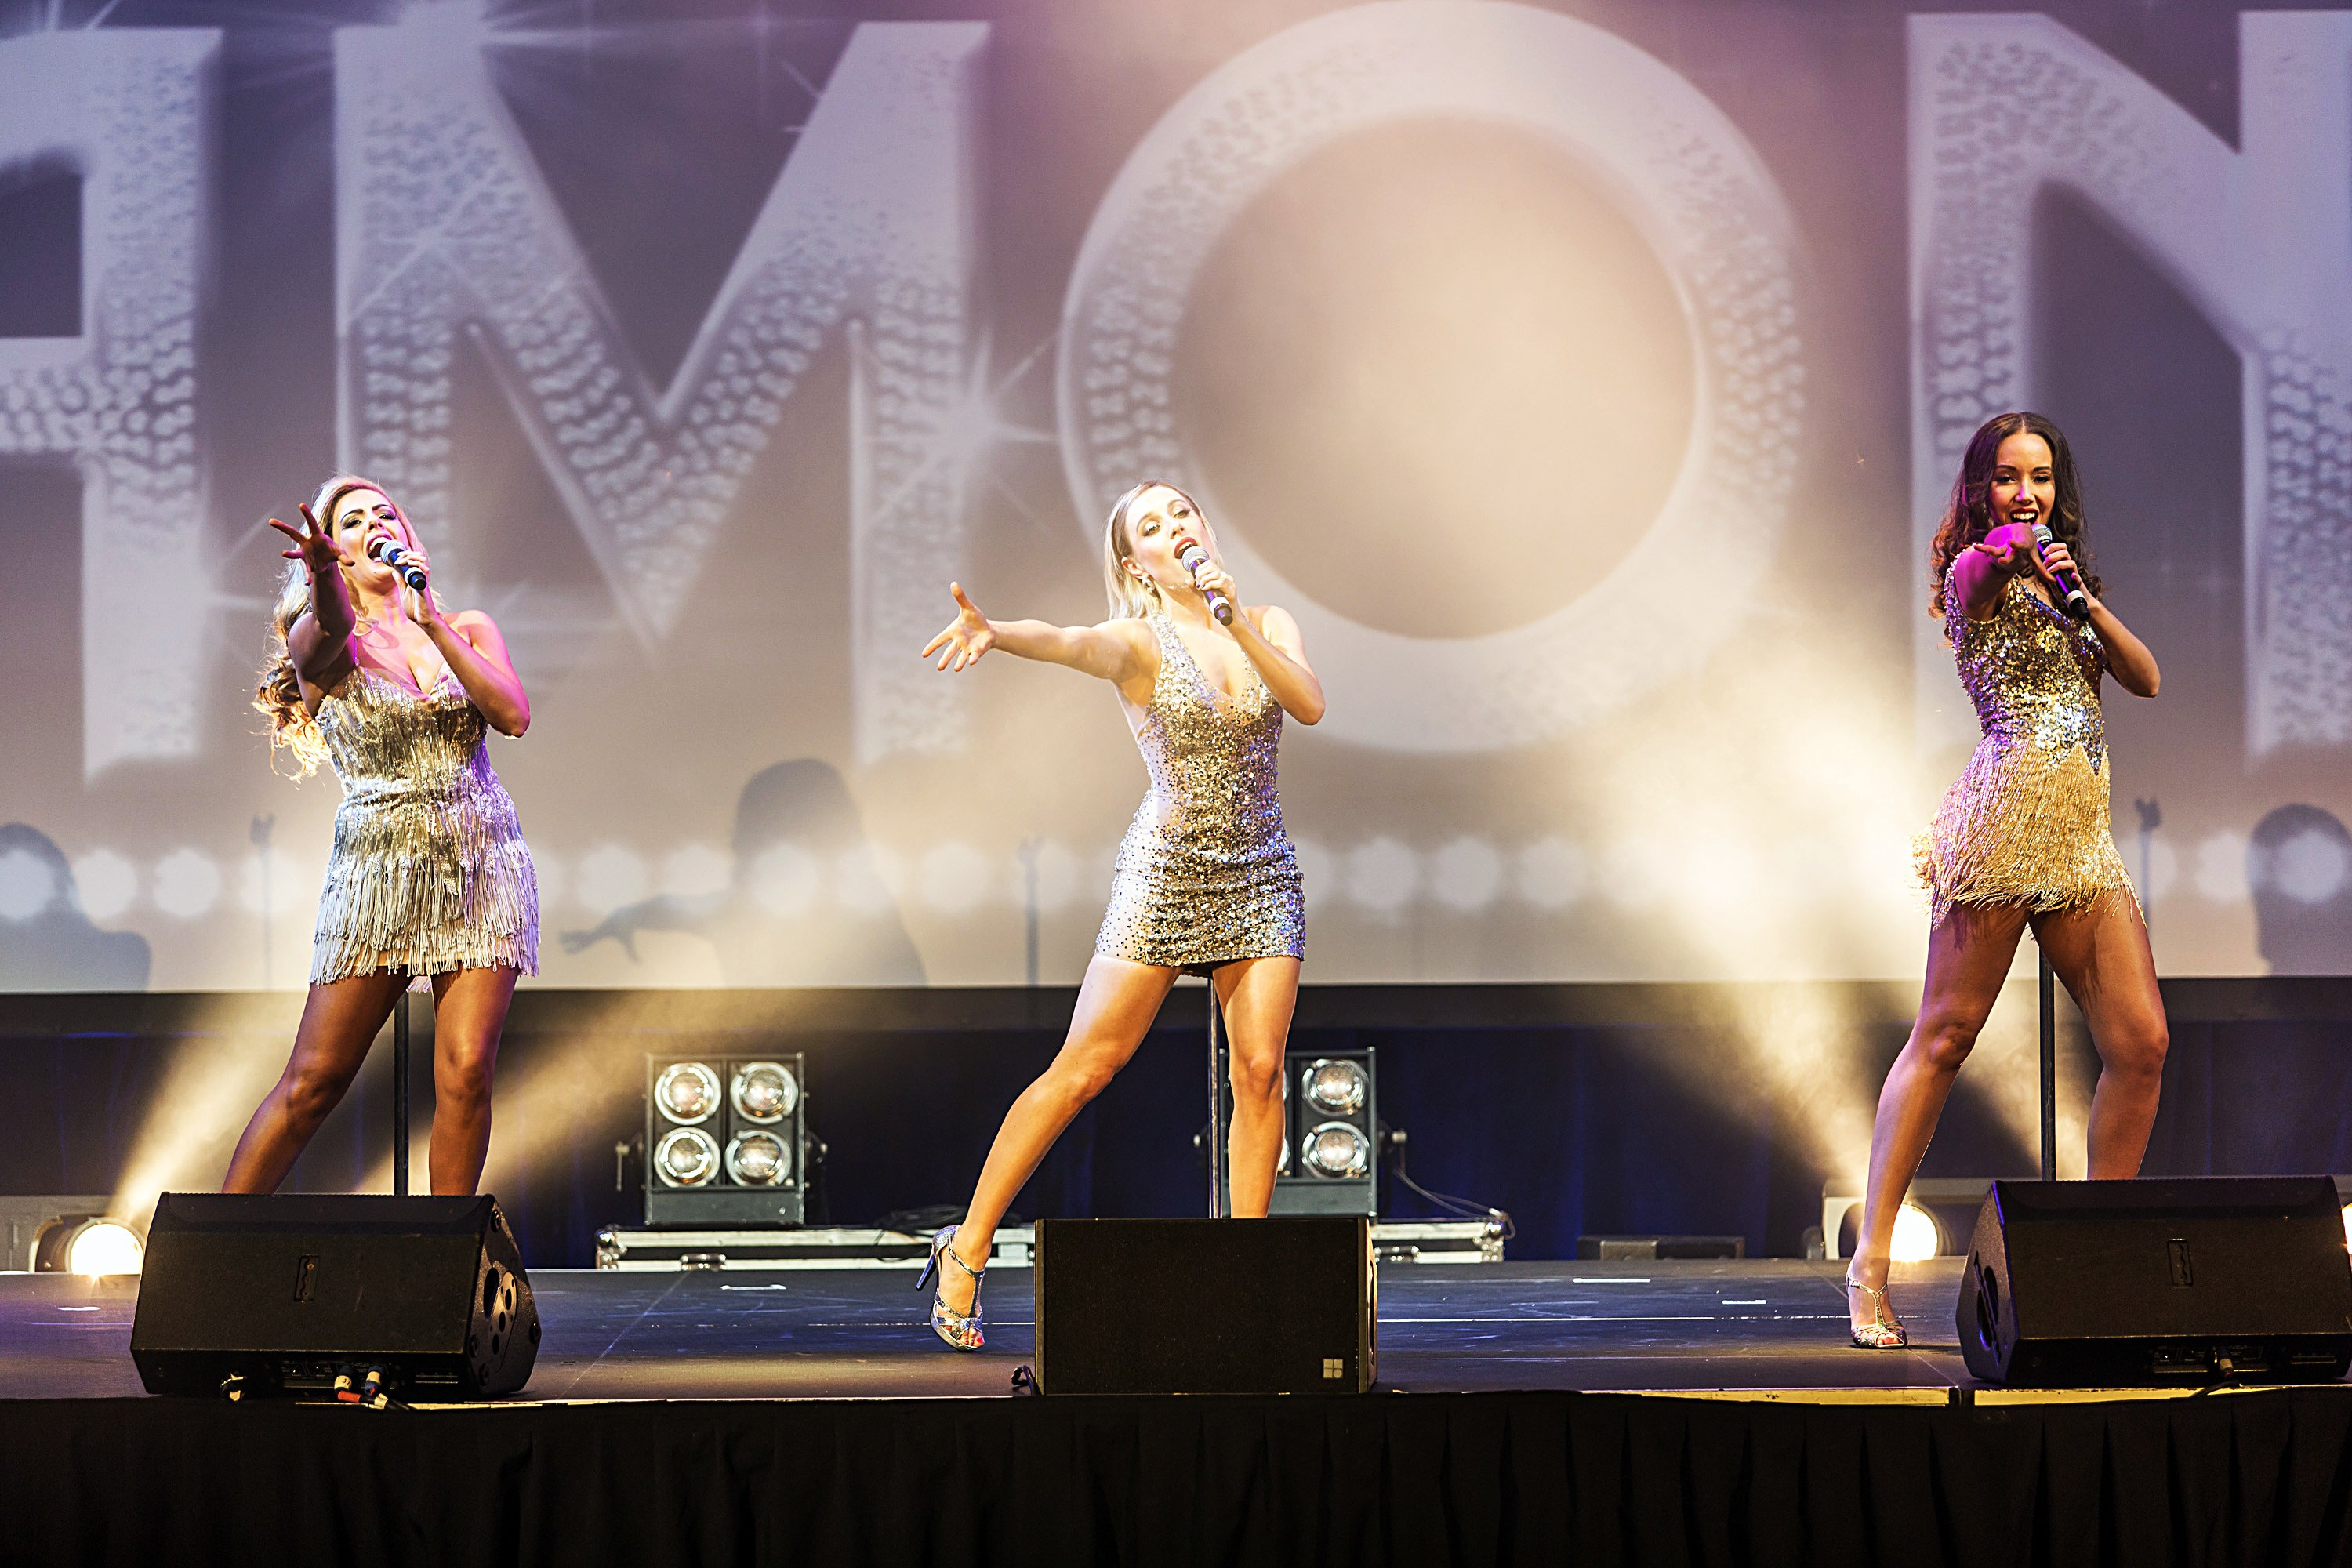 The Diamonds Performing on the stage